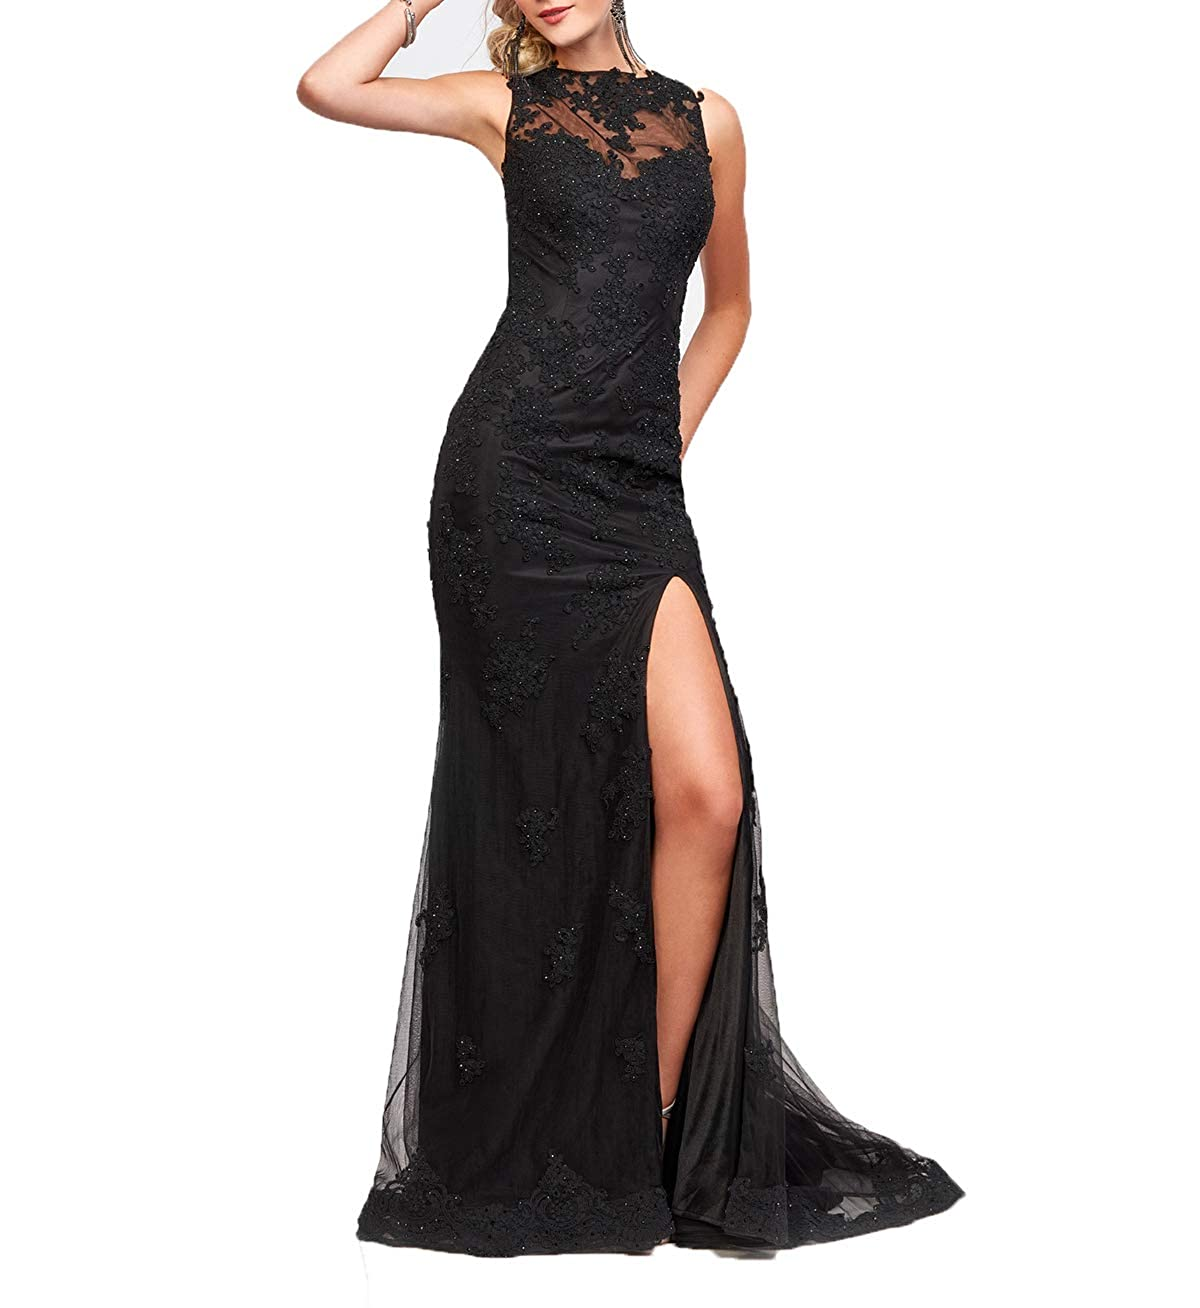 Black Wanshaqin Cap Sleeveless Lace Mermaid Prom Formal Dresses Evening Cocktail Dress Bridesmaid Gowns for Events Party